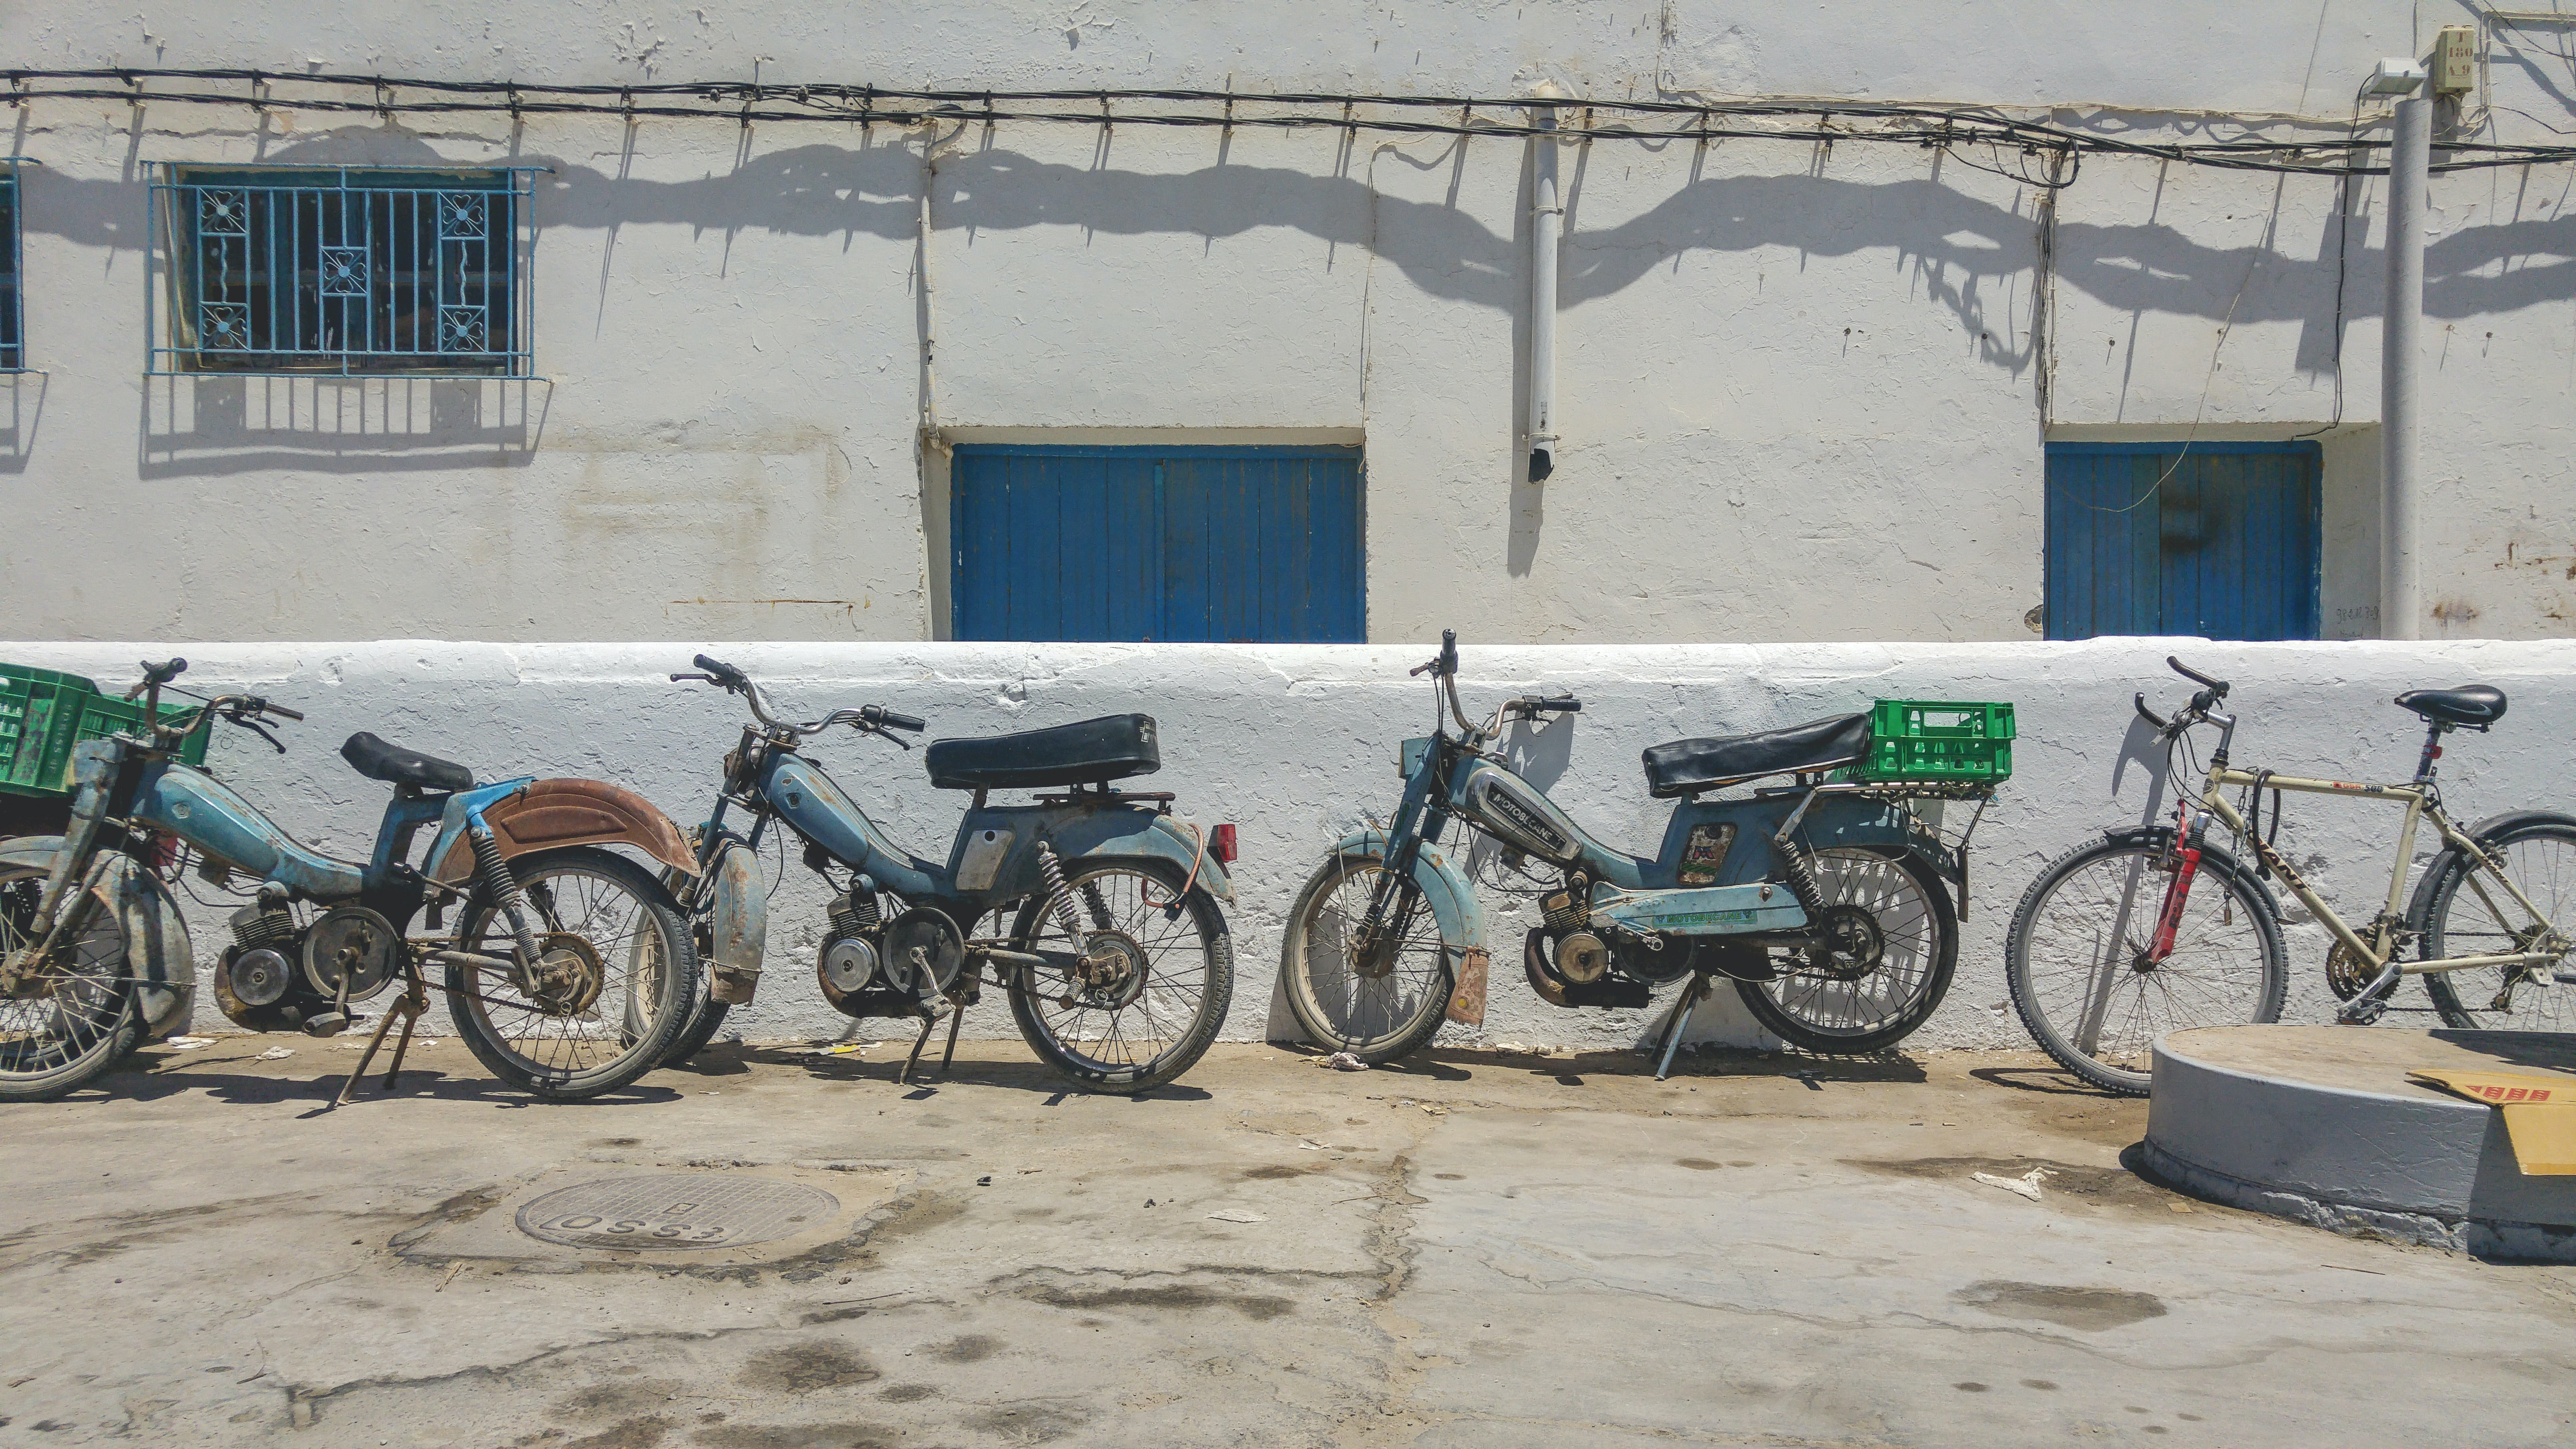 A row of old fashioned motorcycles beside a bike lined up against the wall in a rural area